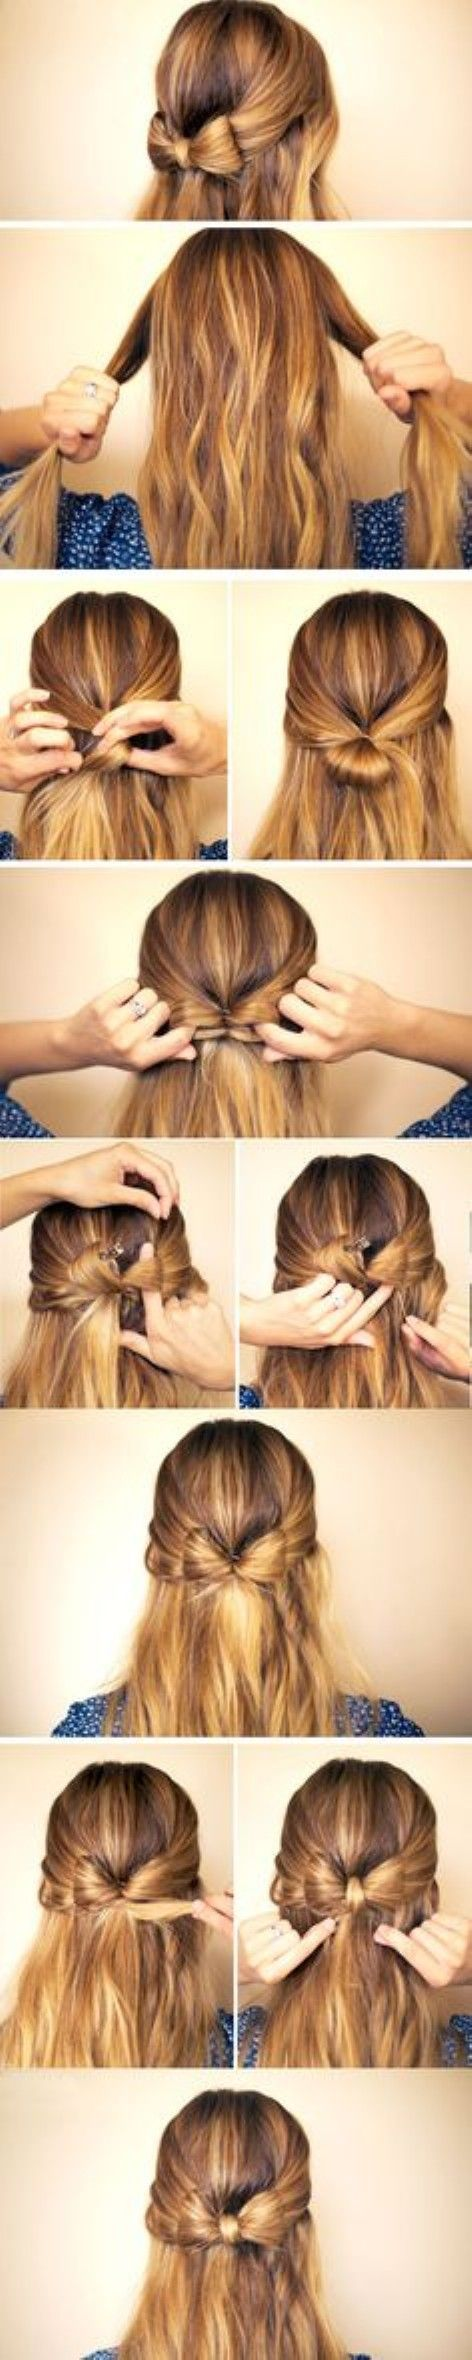 best 25+ simple hairstyles for everyday ideas on pinterest | cute